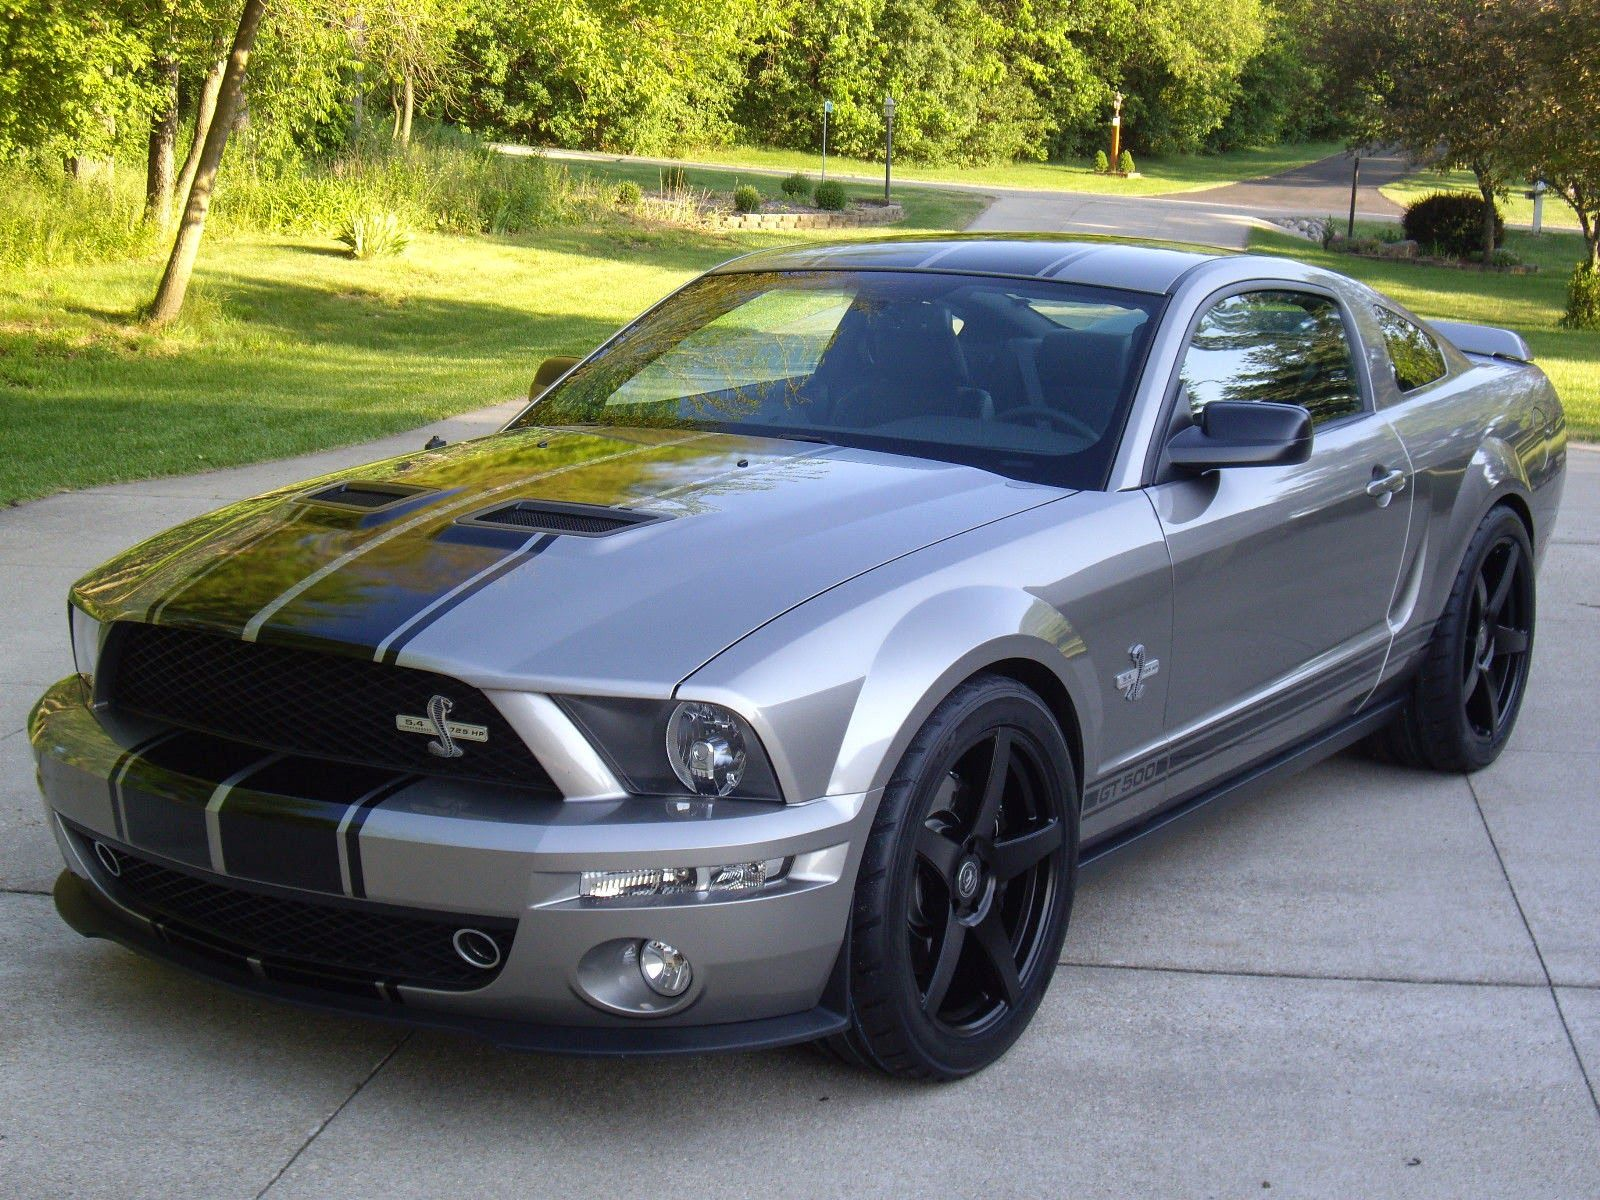 Pin By Danii Flores On American Muscle Cars For Women Only Mustang Shelby 2008 Ford Mustang Ford Mustang Shelby Gt500